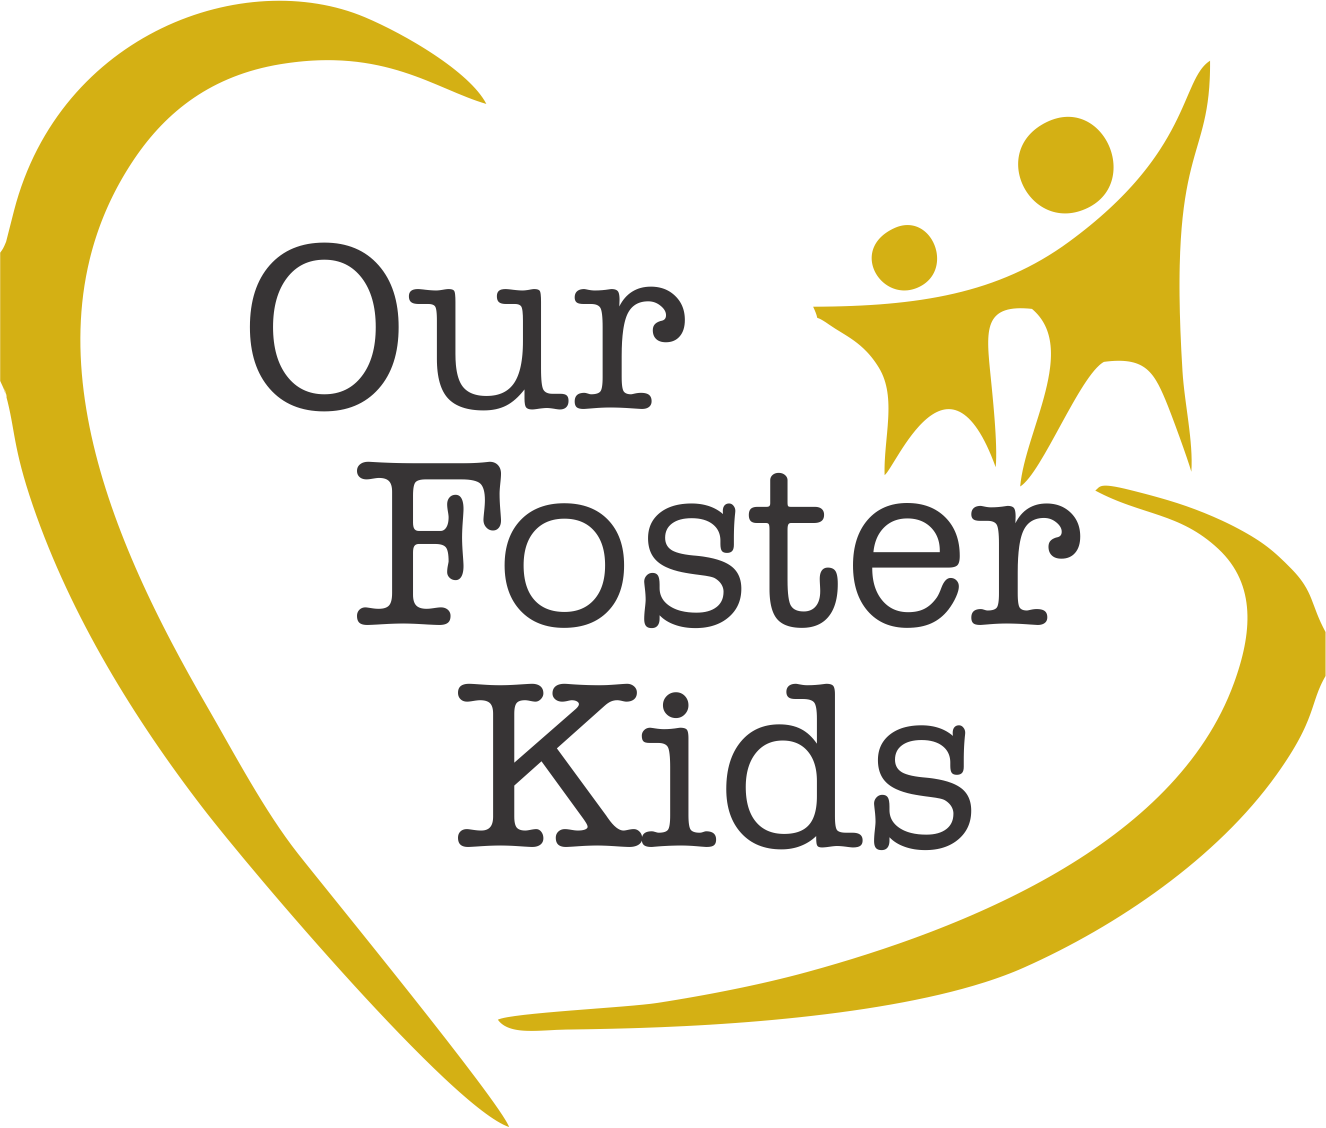 Our Foster Kids